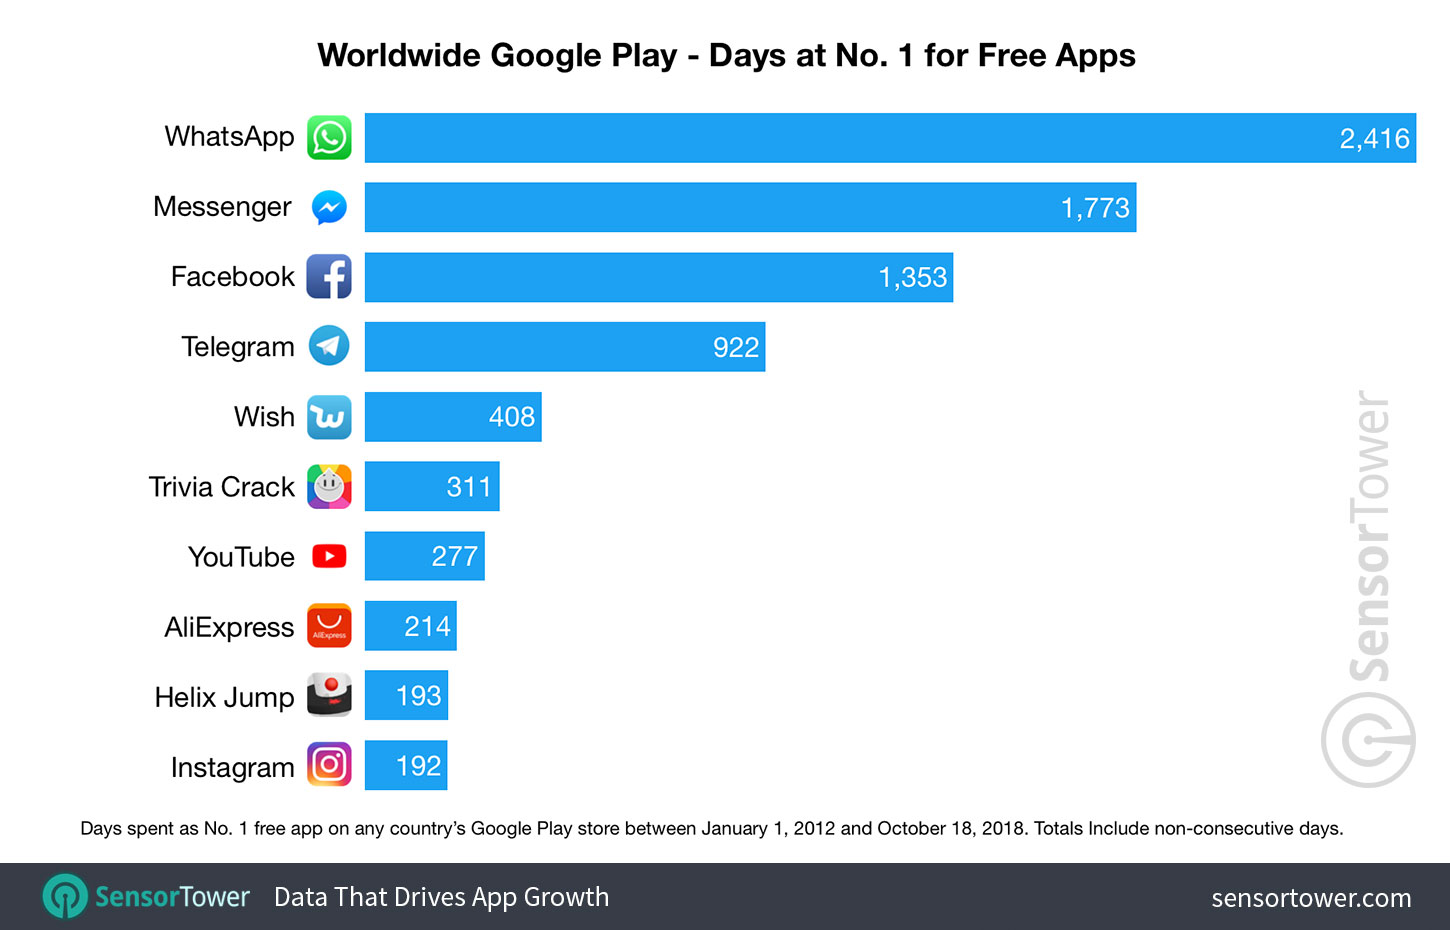 These Apps and Games Have Spent the Most Time at No  1 on Google